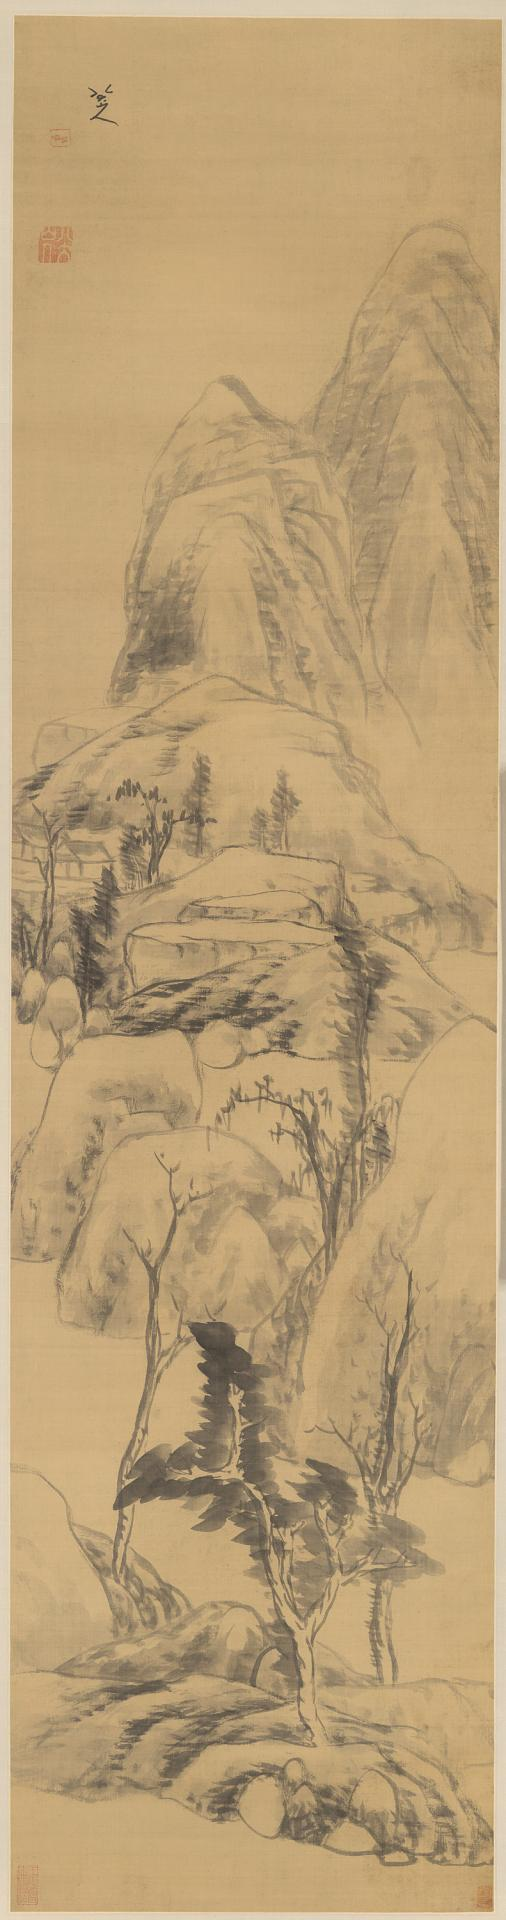 Landscape in the style of Huang Gongwang, (1269-1354)